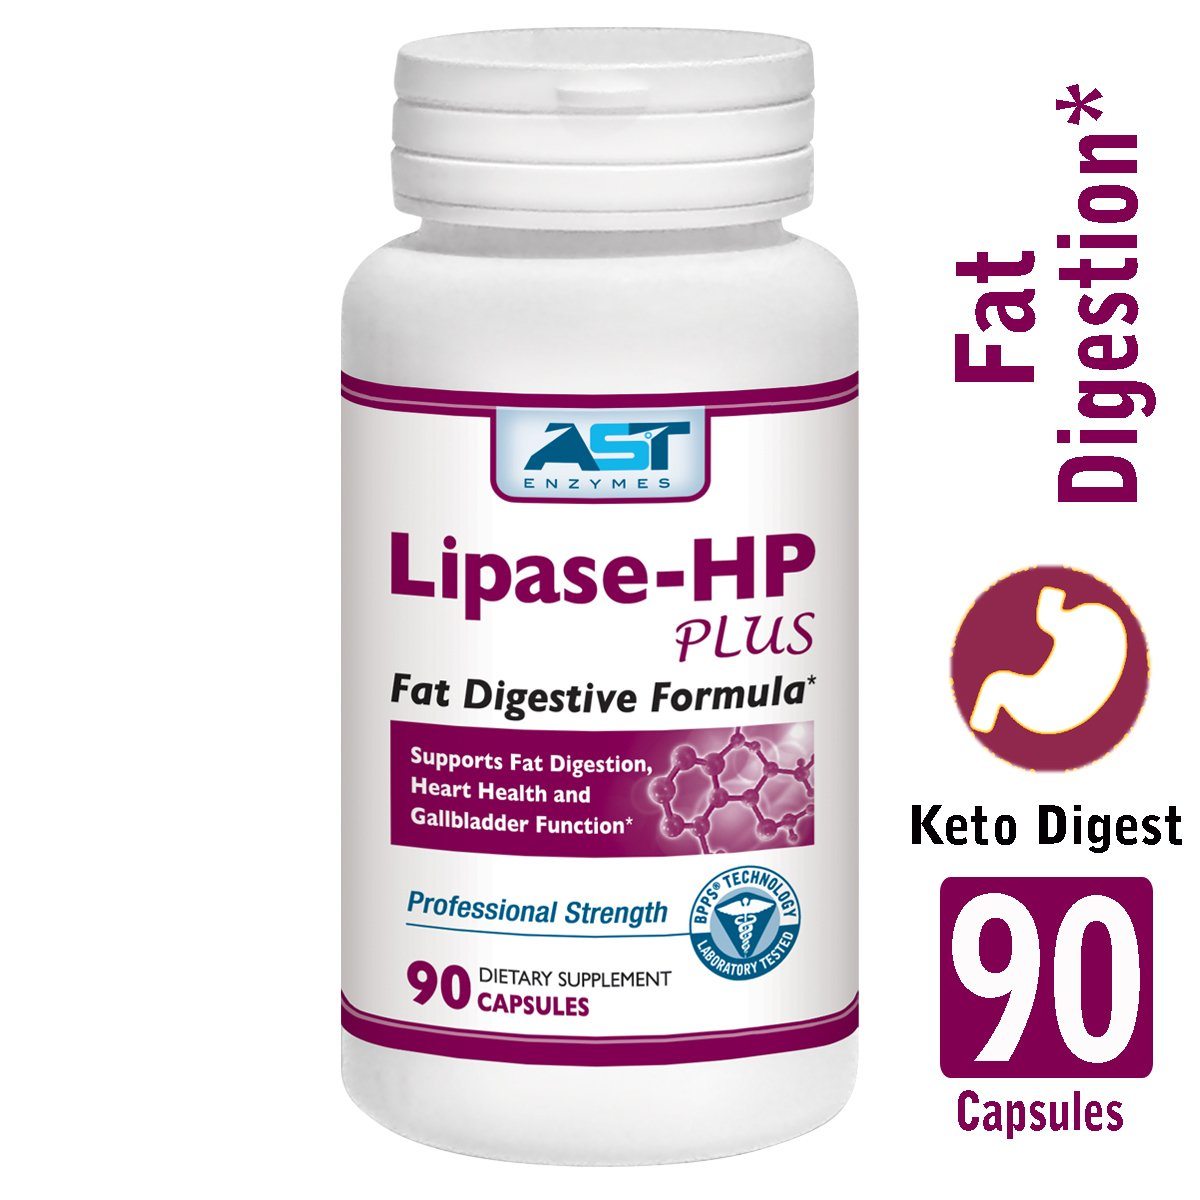 Amazon.com: lipase-hp Plus – 90 Cápsulas vegetarianas – Fat ...